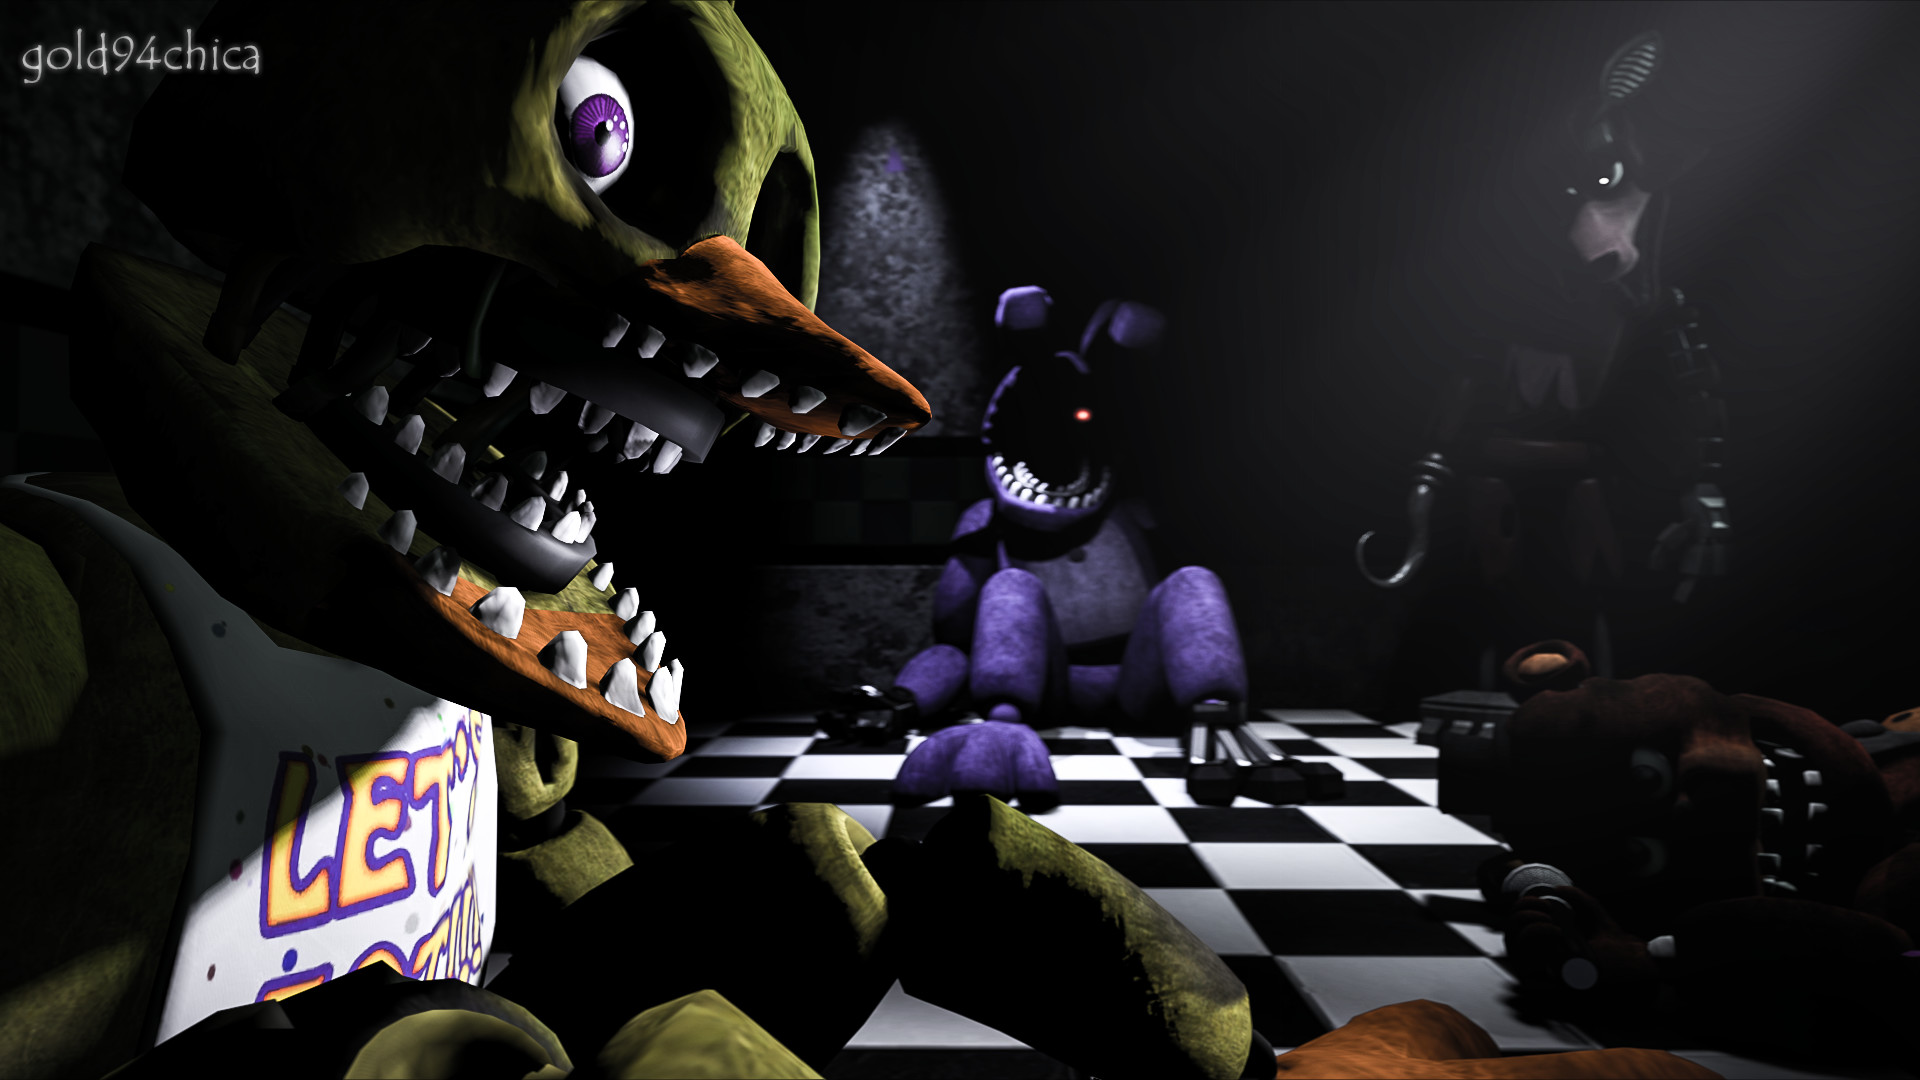 FNAF Chica – High Quality HD Wallpapers